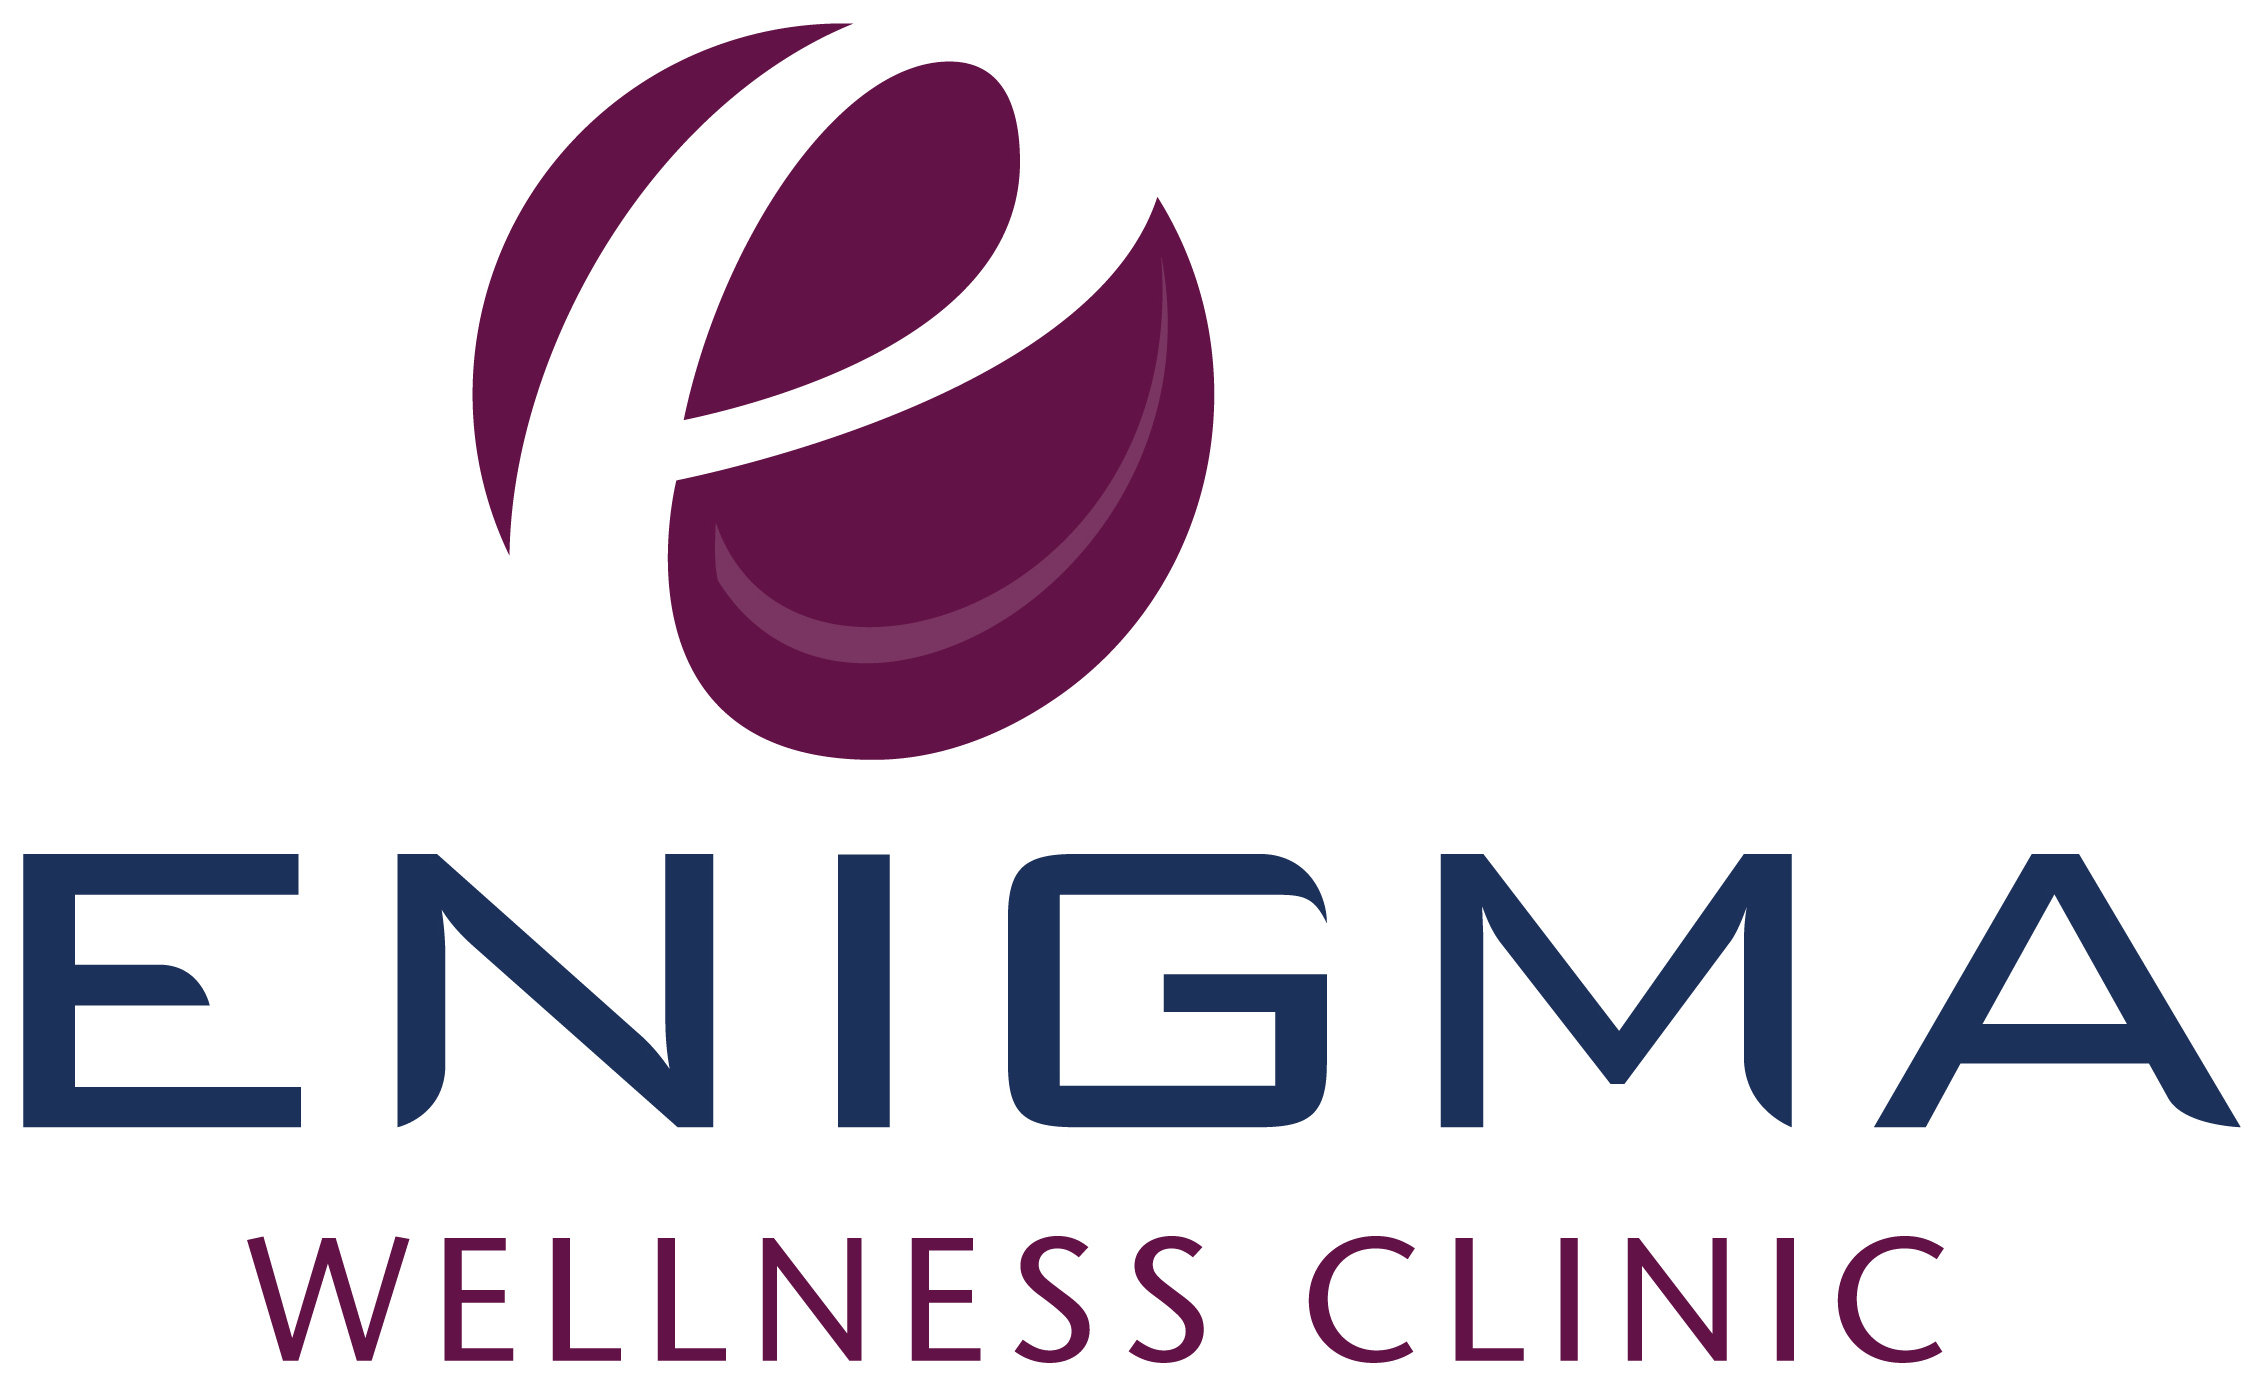 Enigma Wellness Clinic